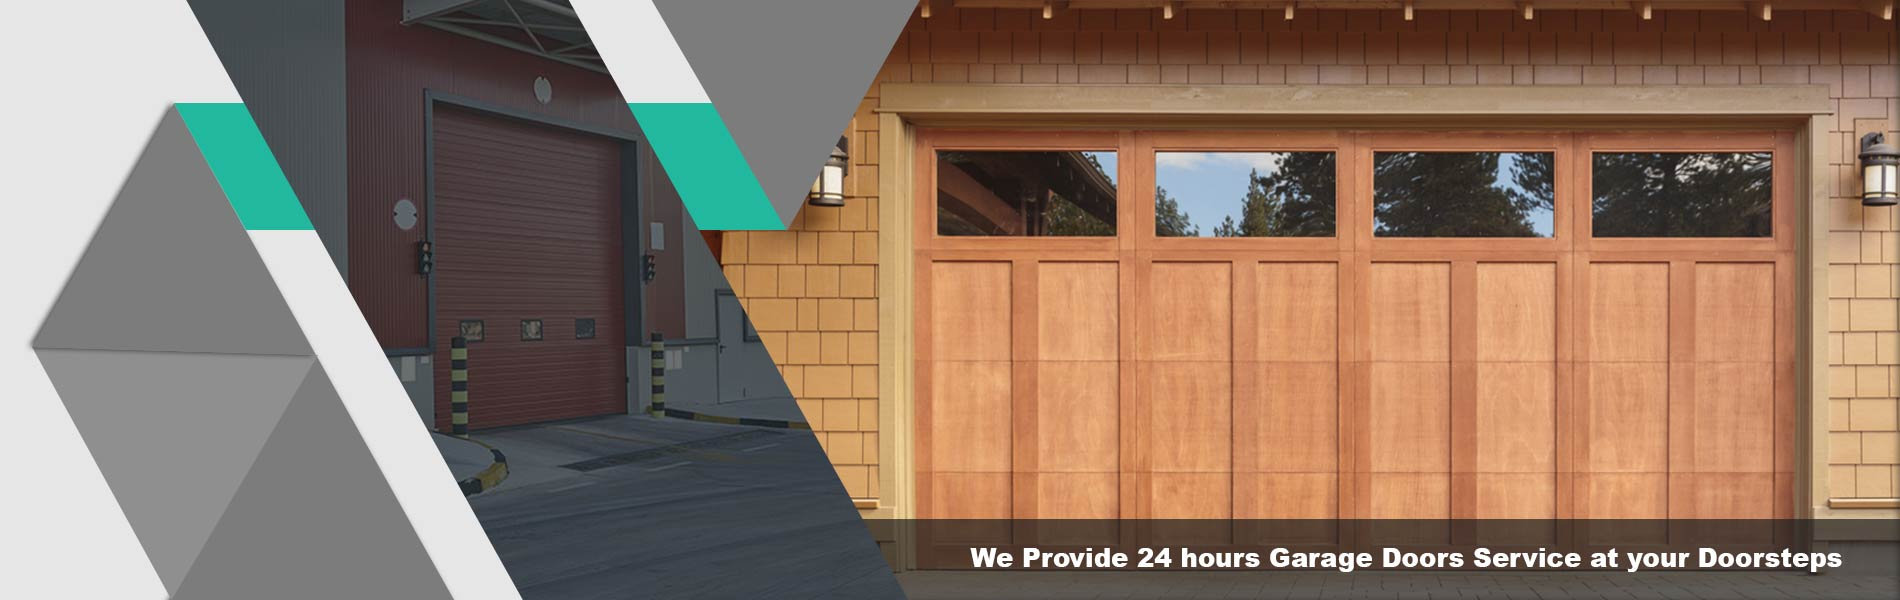 Central Garage Door Service Vancouver, WA 360-558-7338